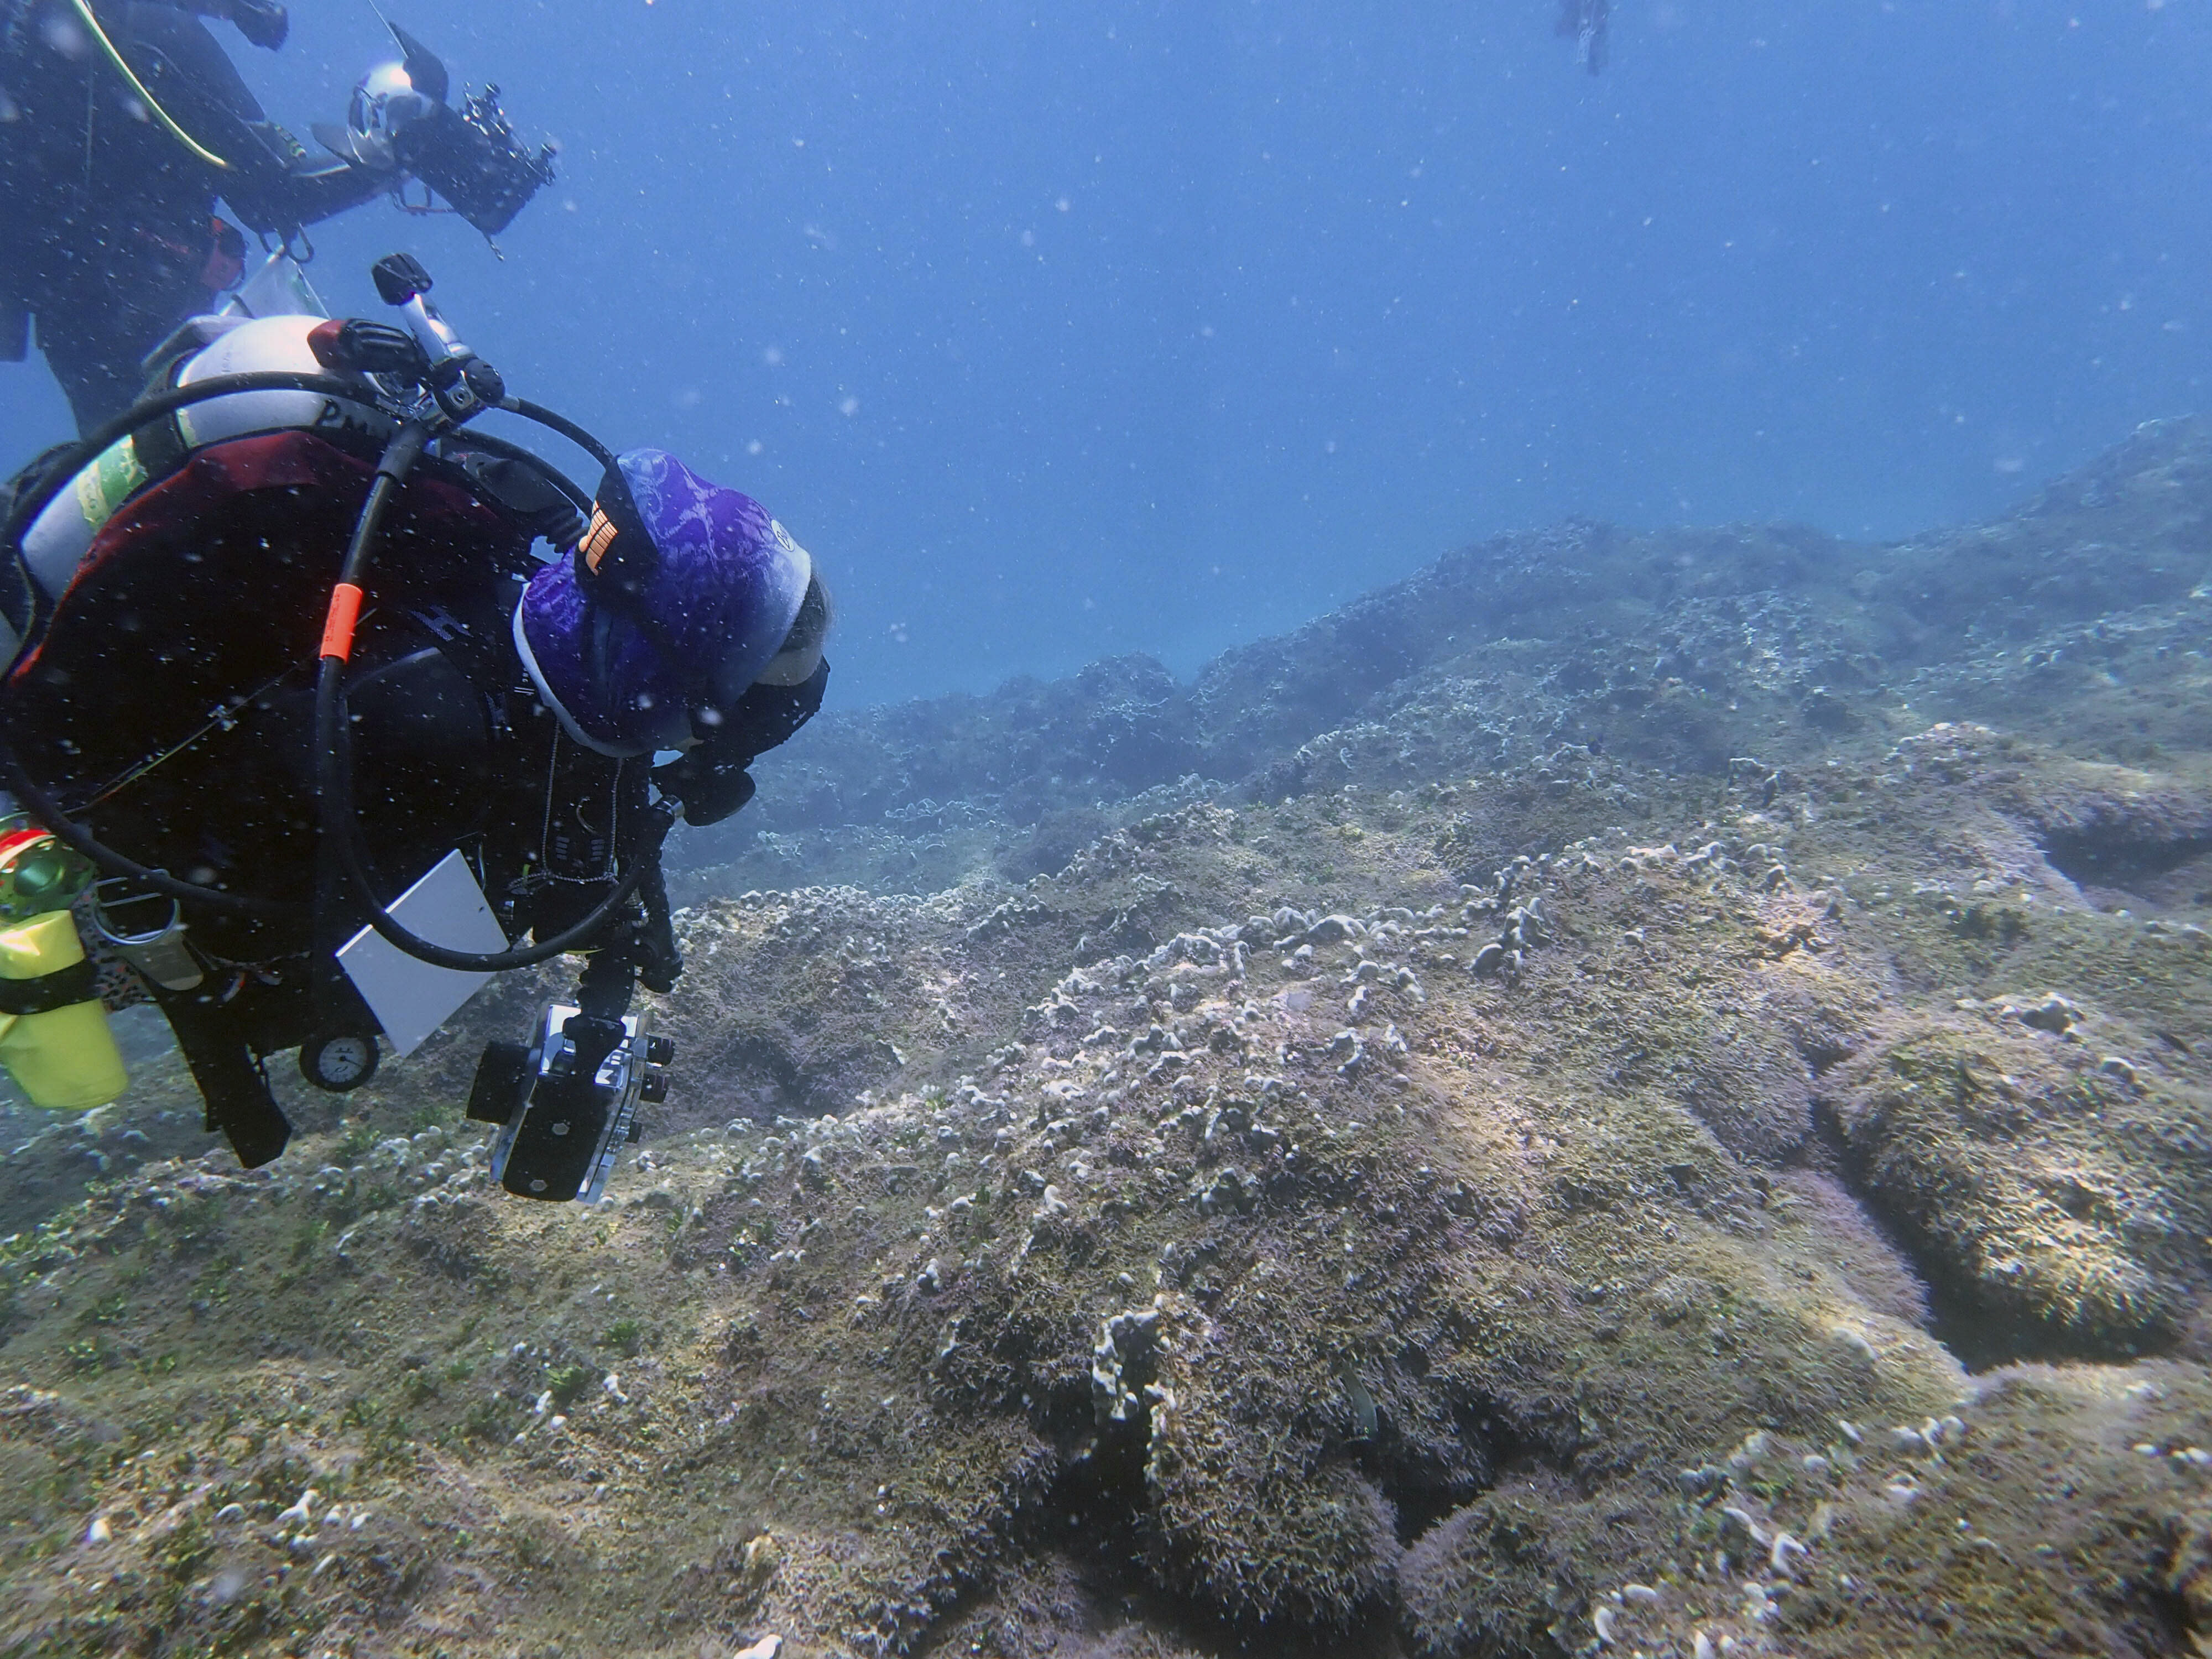 In this Aug. 9, 2019 photo provided by researcher Heather Spalding, divers look at a new species of seaweed covering a coral reef at Pearl and Hermes Atoll in the remote Northwestern Hawaiian Islands. Researchers say the recently discovered species of seaweed is killing large patches of coral on once-pristine reefs and is rapidly spreading across one of the most remote and protected ocean environments on earth. A study from the University of Hawaii and others says the seaweed is spreading more rapidly than anything they've seen in the Northwestern Hawaiian Islands, a nature reserve that stretches more than 1,300 miles north of the main Hawaiian Islands. The algae easily breaks off and rolls across the ocean floor like tumbleweed, scientists say, covering nearby reefs in thick vegetation that out-competes coral for space, sunlight and nutrients. (Heather Spalding/College of Charleston via AP)